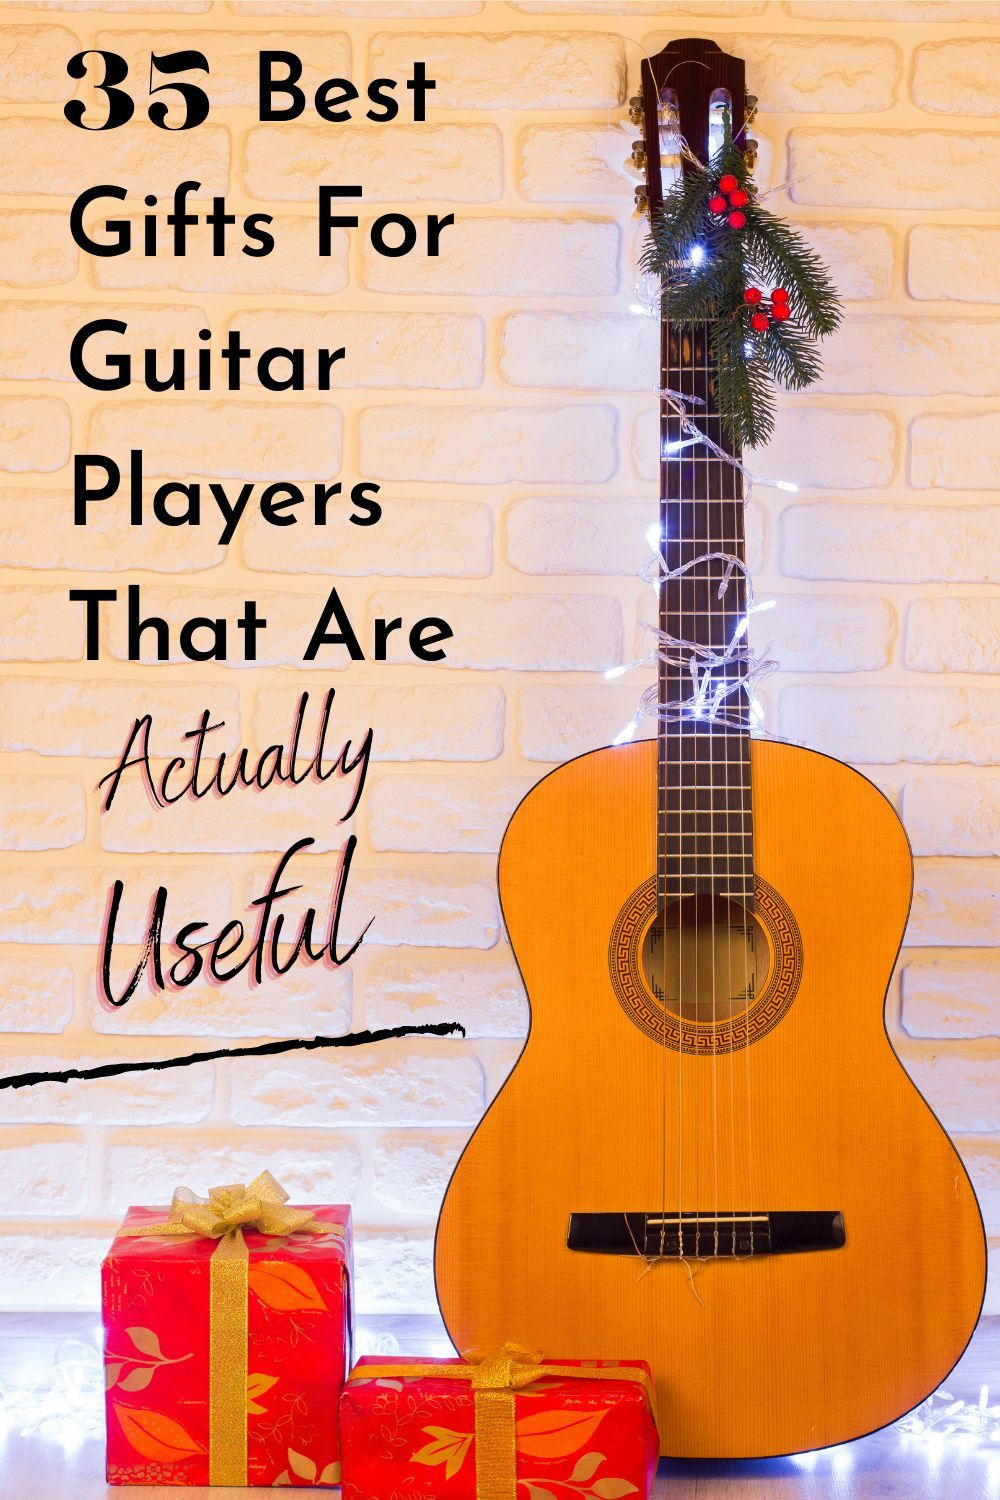 Best Gifts For Guitar Players Guitar Lover Gifts Guitar Gifts Guitar